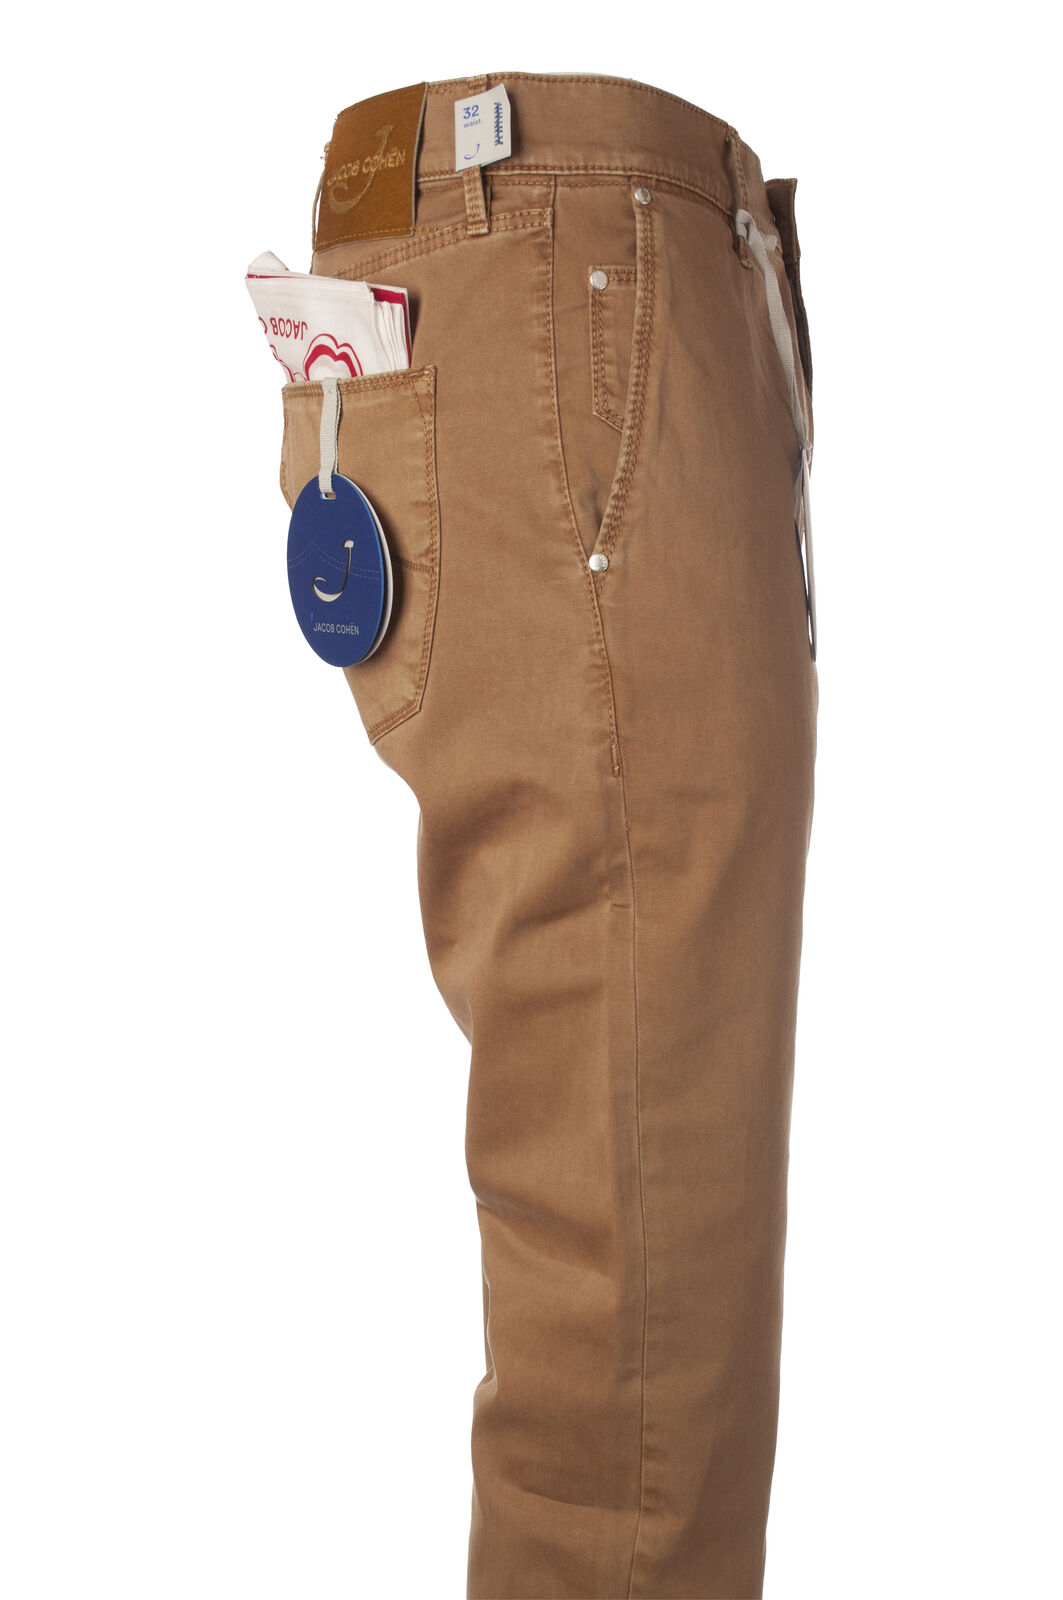 Jacob Cohen - Pants-Pants - Man - Beige - 5971312C191500